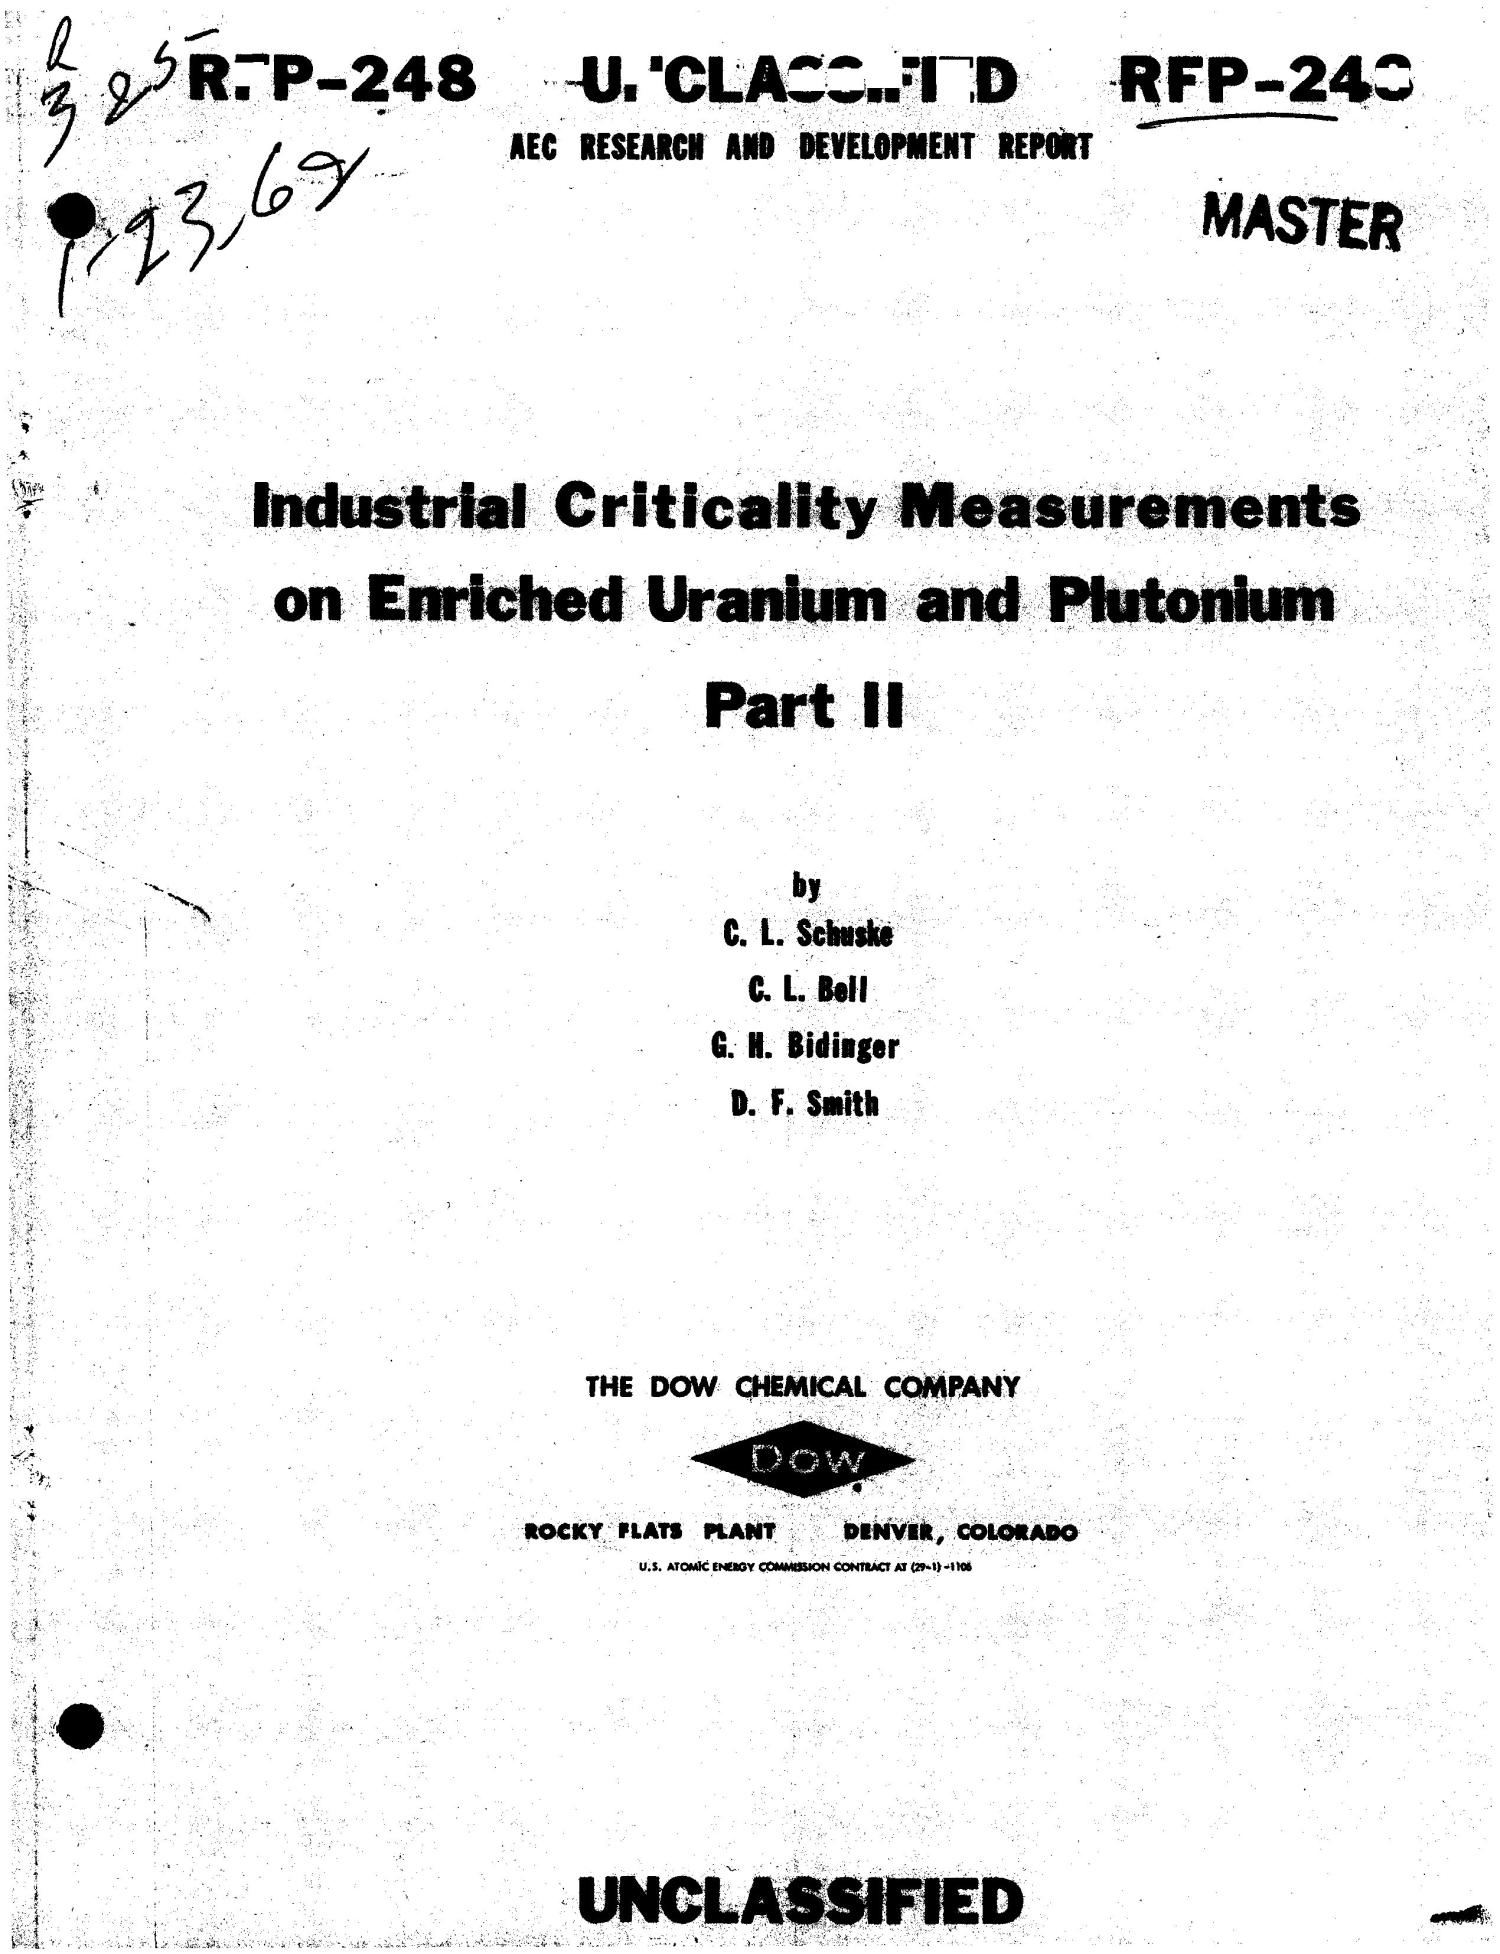 INDUSTRIAL CRITICALITY MEASUREMENTS ON ENRICHED URANIUM AND PLUTONIUM. PART II                                                                                                      [Sequence #]: 1 of 24